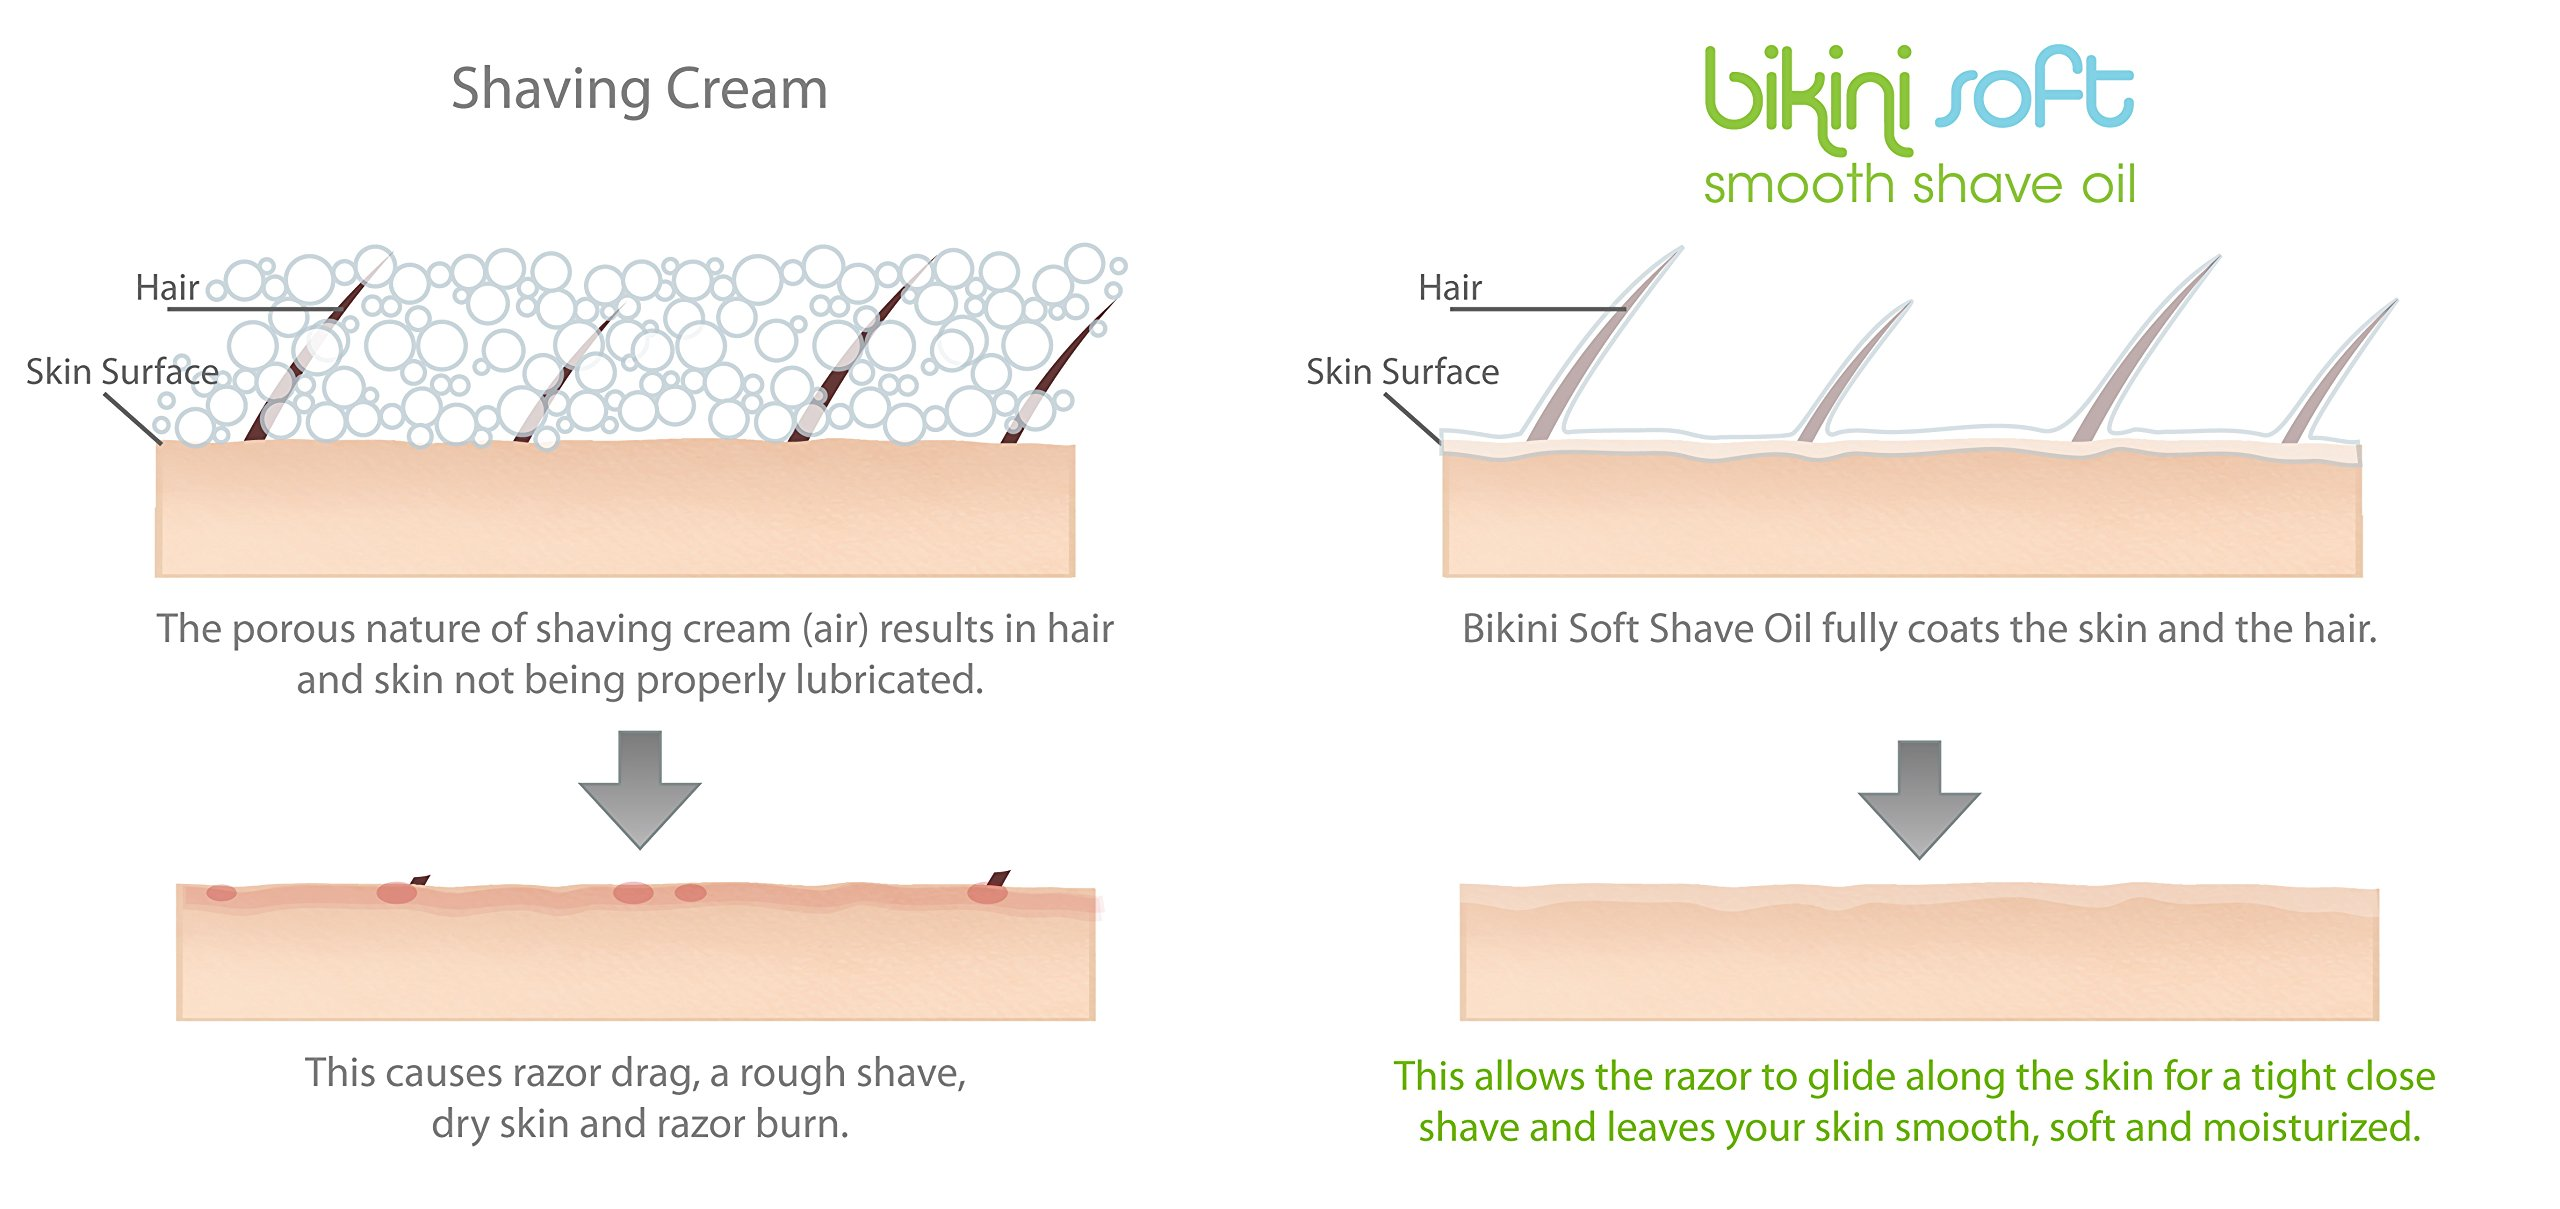 BIKINI SOFT Smooth Shave Oil (2 oz) Fresh Citrus Bliss Scent - SMOOTHEST SHAVE EVER on Legs, Underarms, Bikini Line & Intimate Areas: Stops Ingrown Hairs, Razor Bumps & Razor Burn- FOR SENSITIVE SKIN